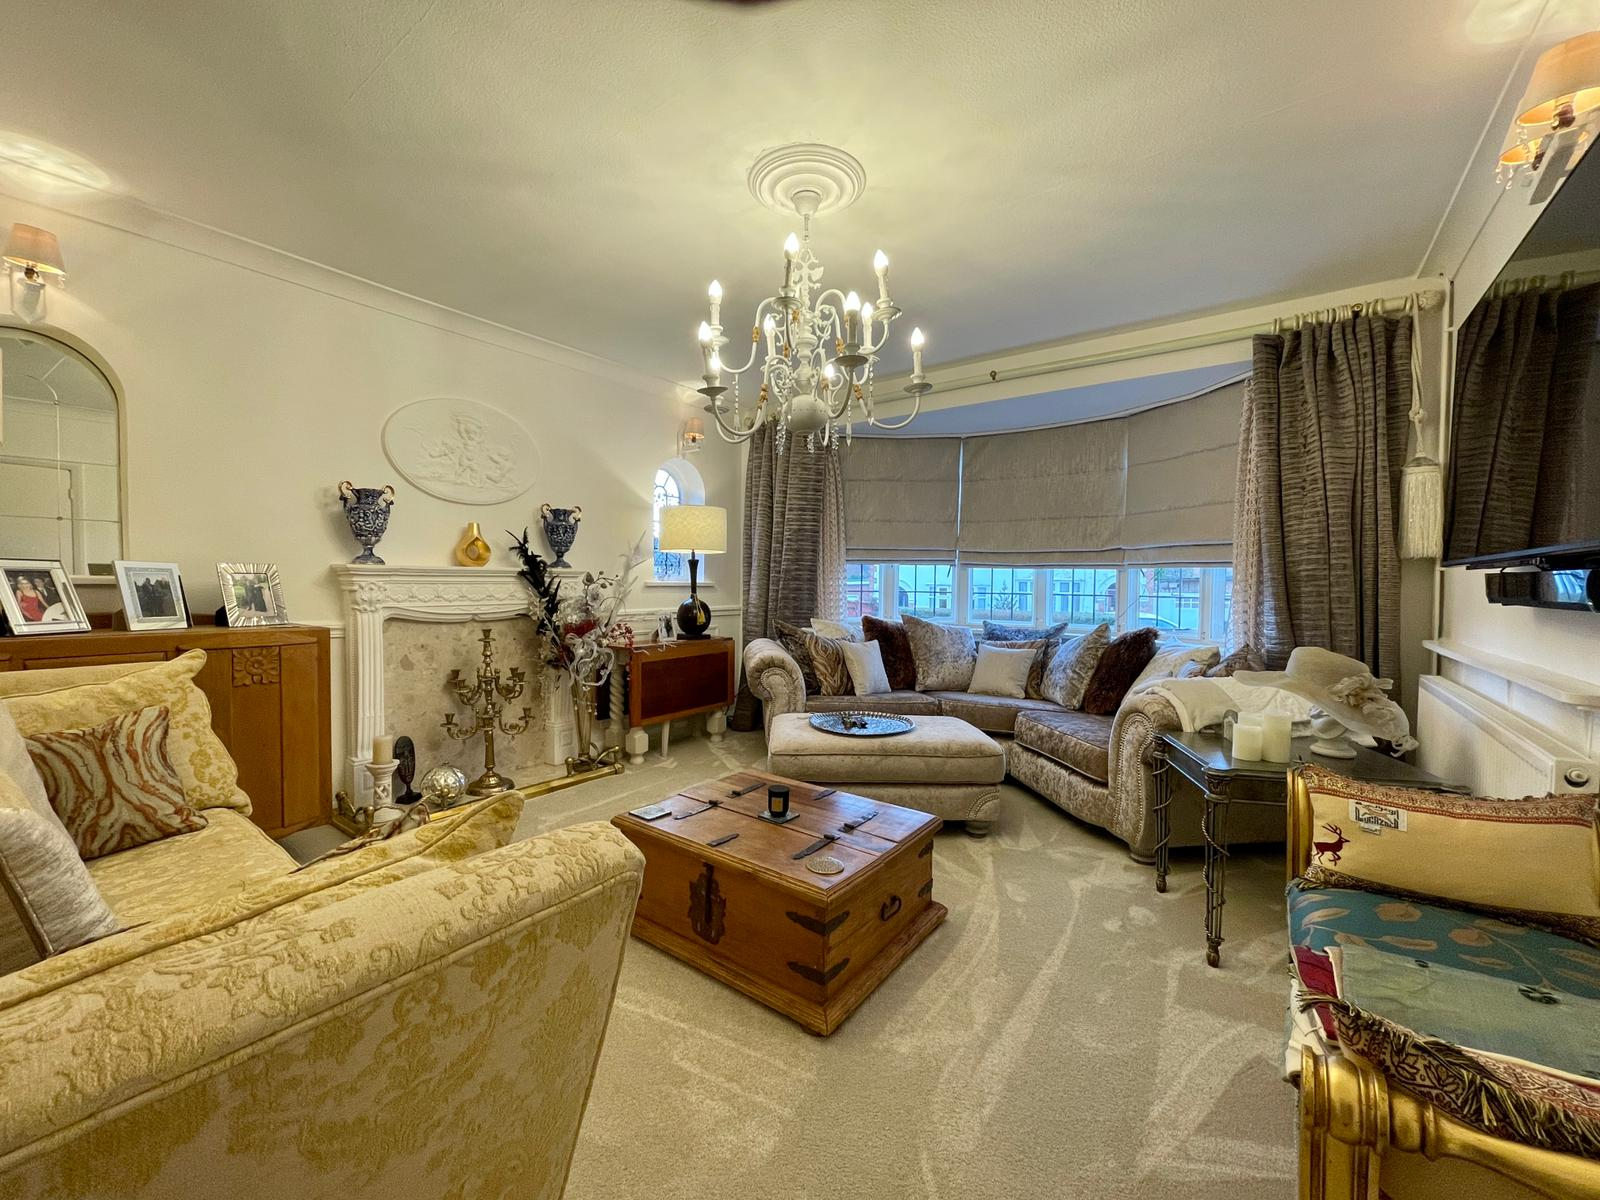 4 bed detached house for sale in Stanley Road, Hinckley, LE10, Hinckley  - Property Image 5